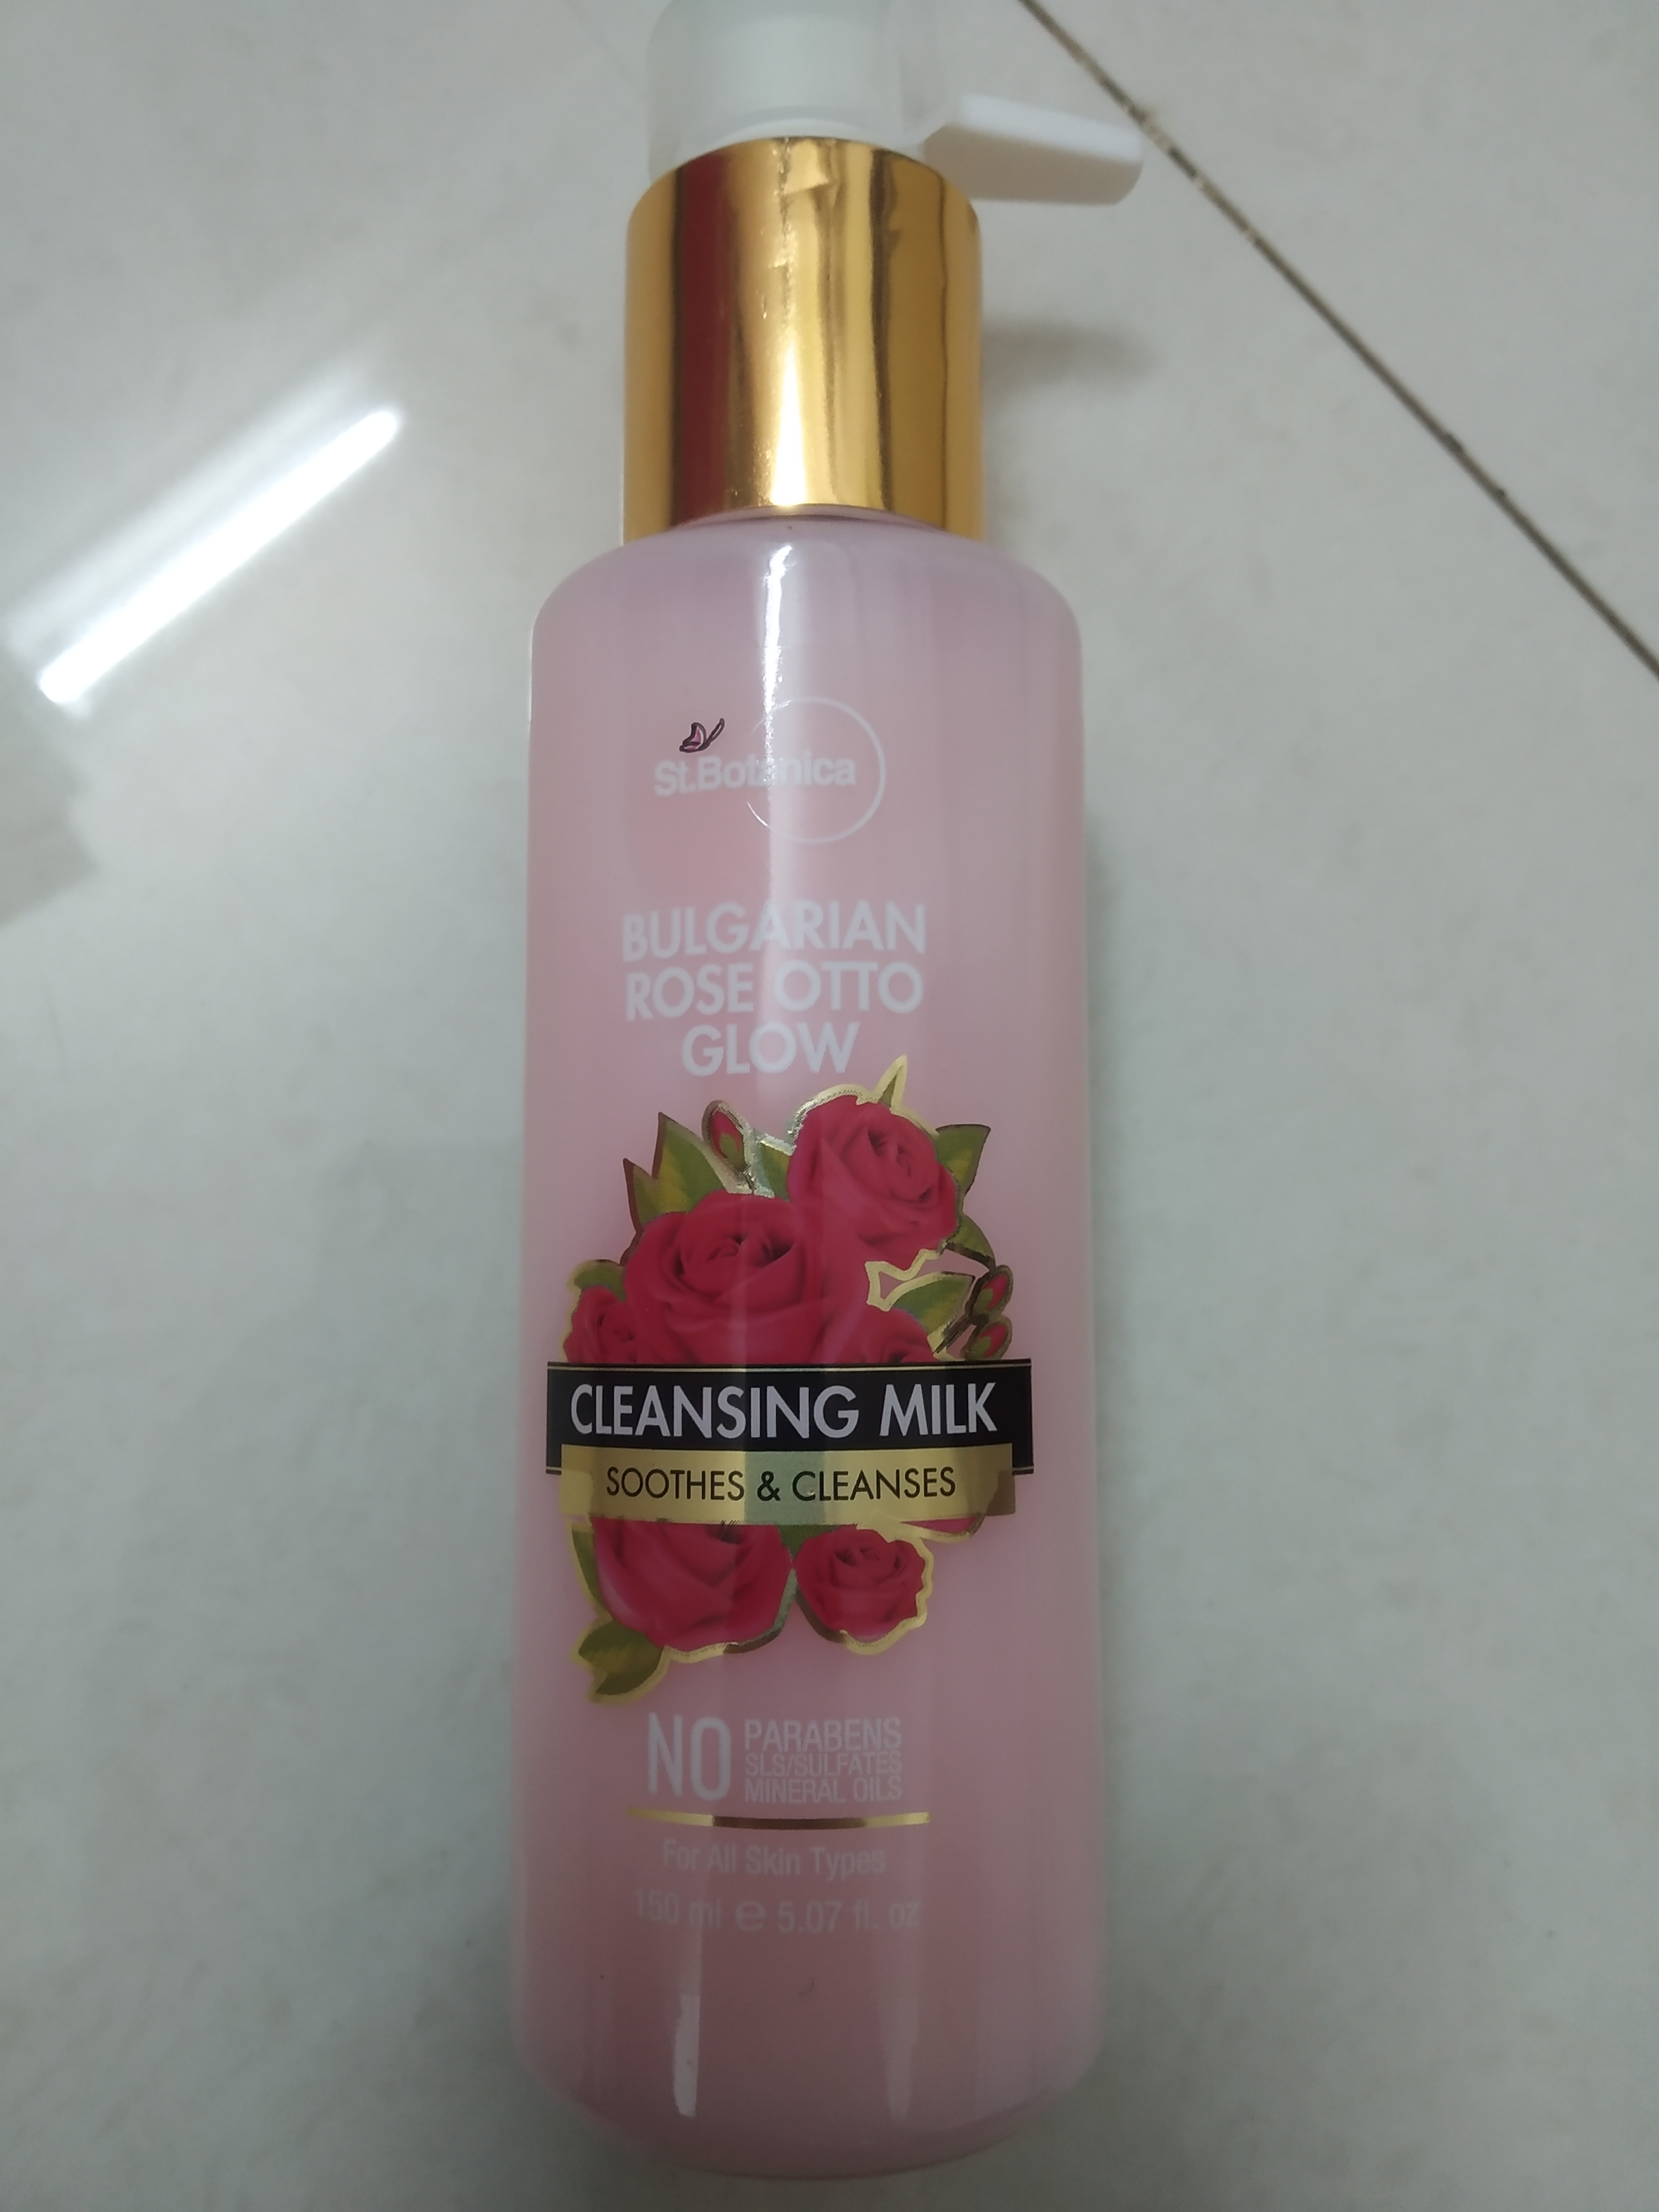 StBotanica Bulgarian Rose Otto Glow Cleansing Milk pic 1-cleansing milk-By vrutti